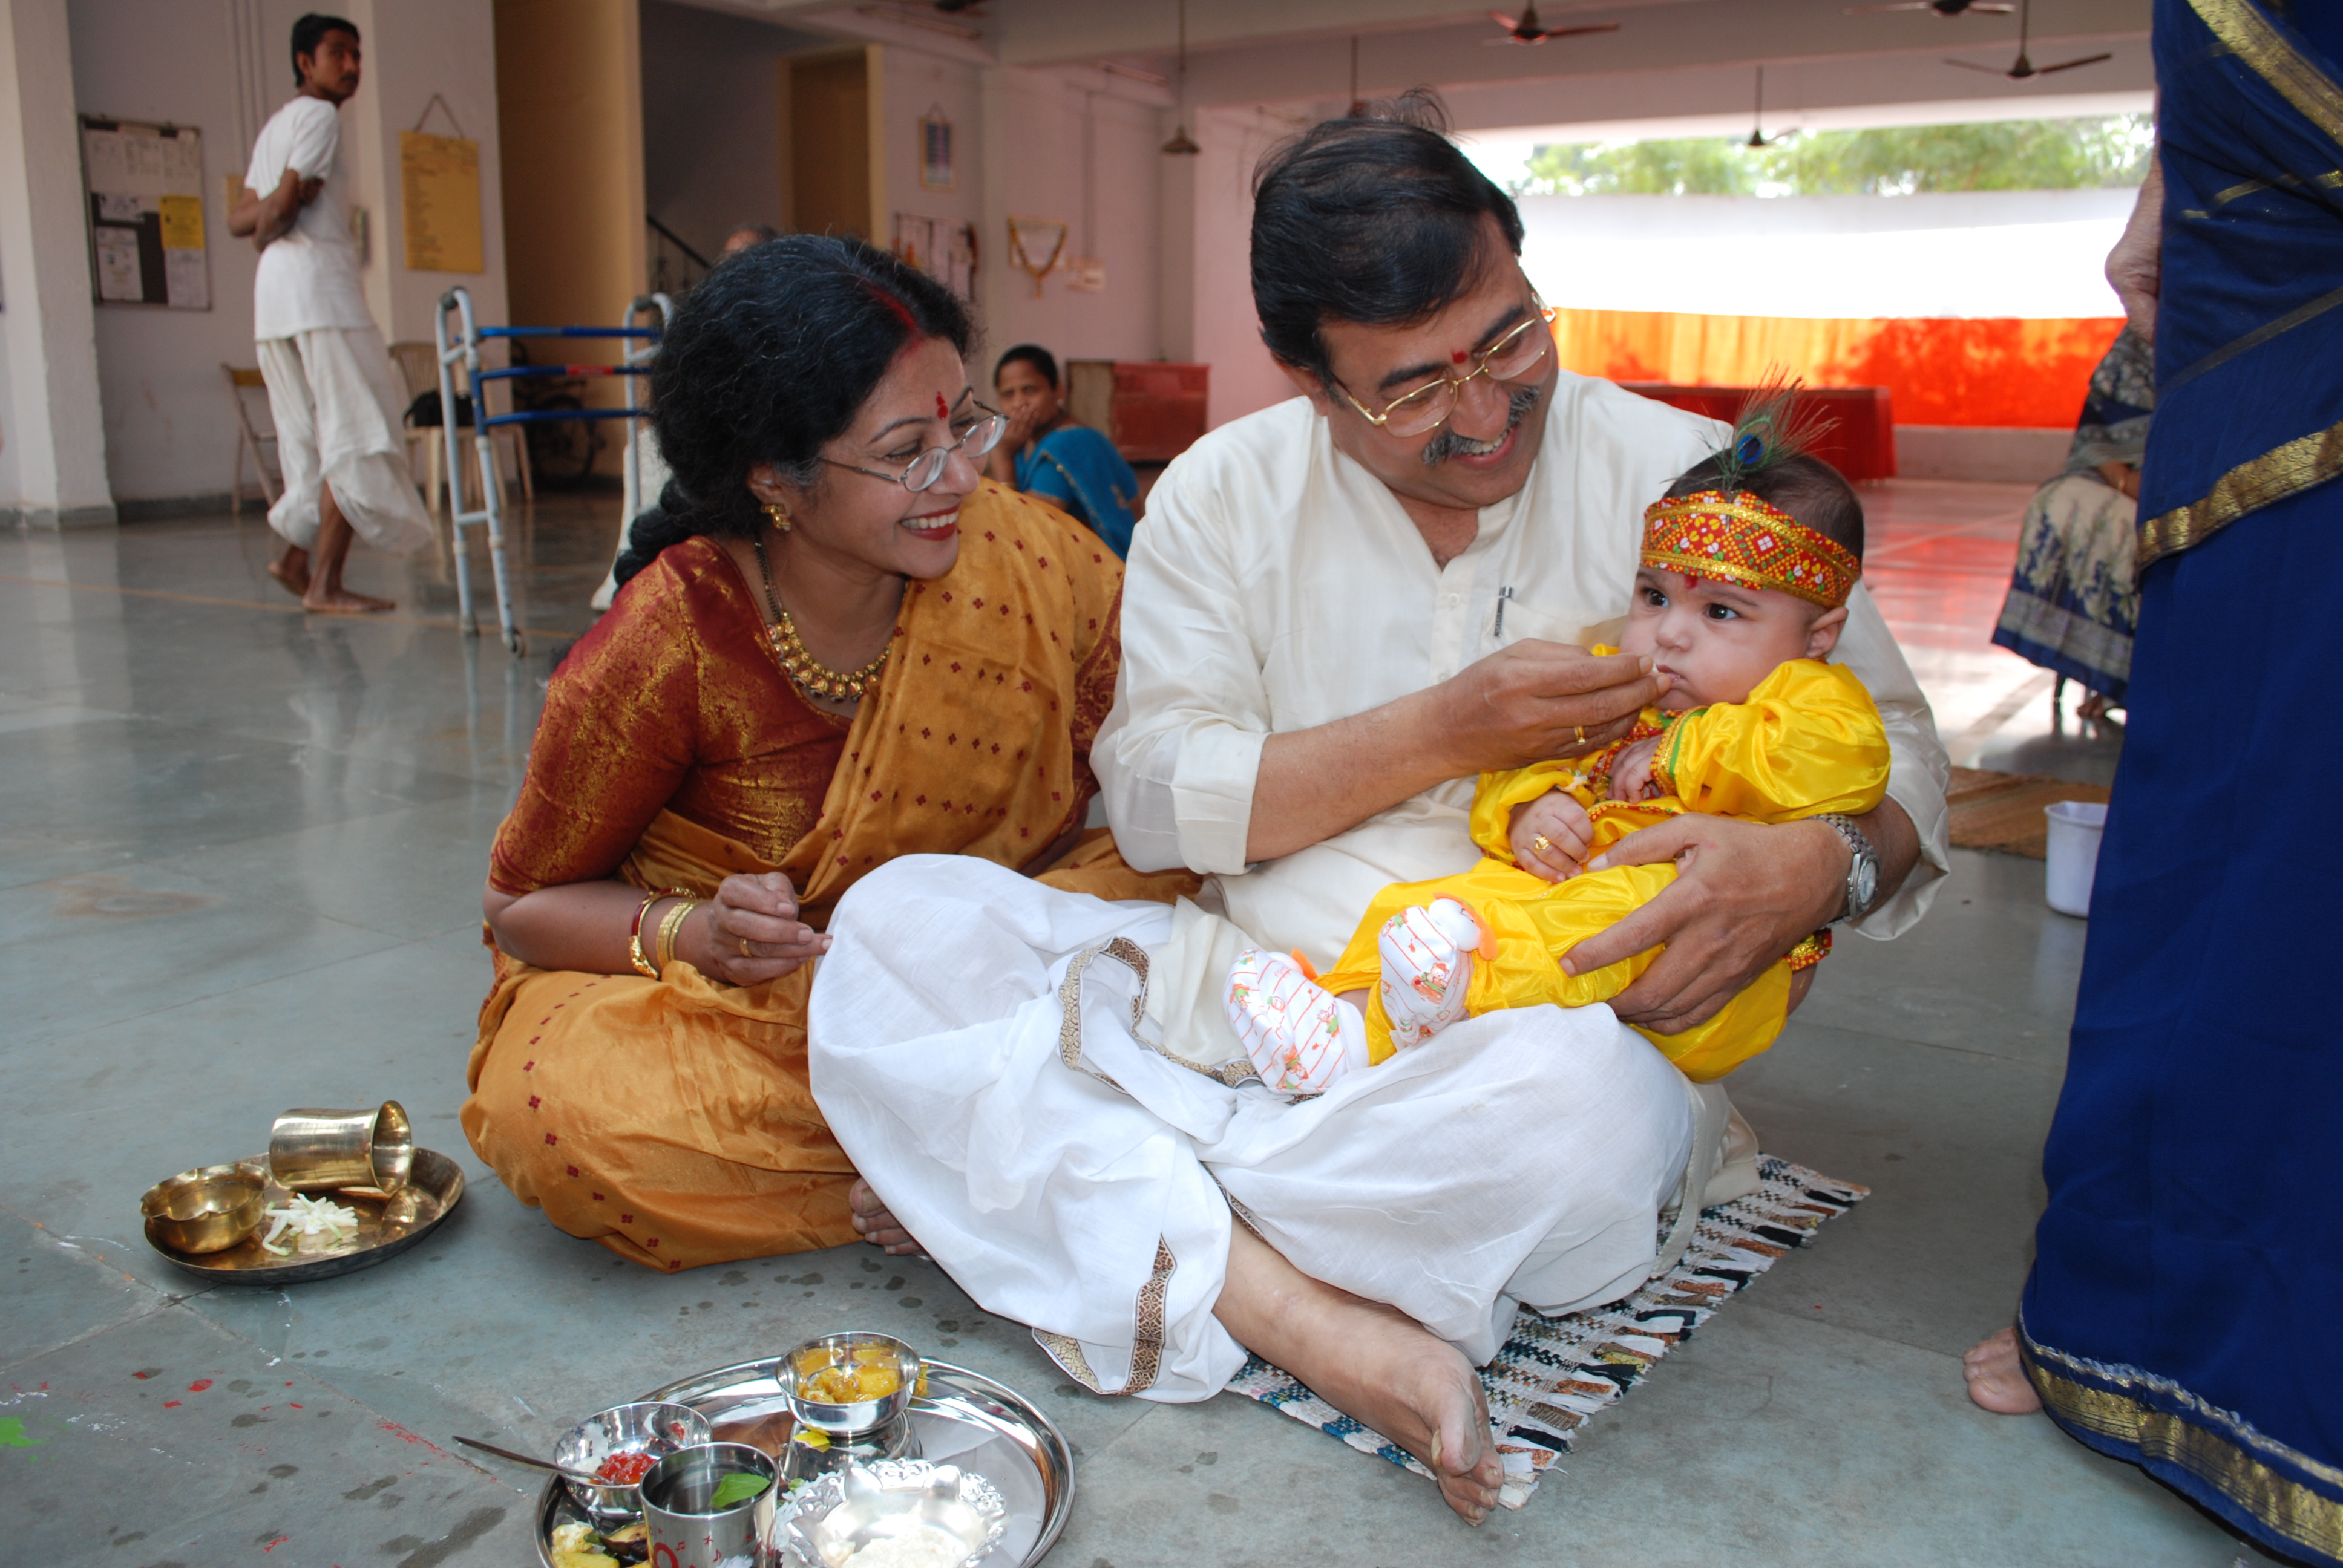 Annaprashan or First Rice, is a Hindu ceremony marking a baby's first meal in which family members feed the baby rice. Photo by Nauzer. This image is from Wikimedia, and is in the public domain.